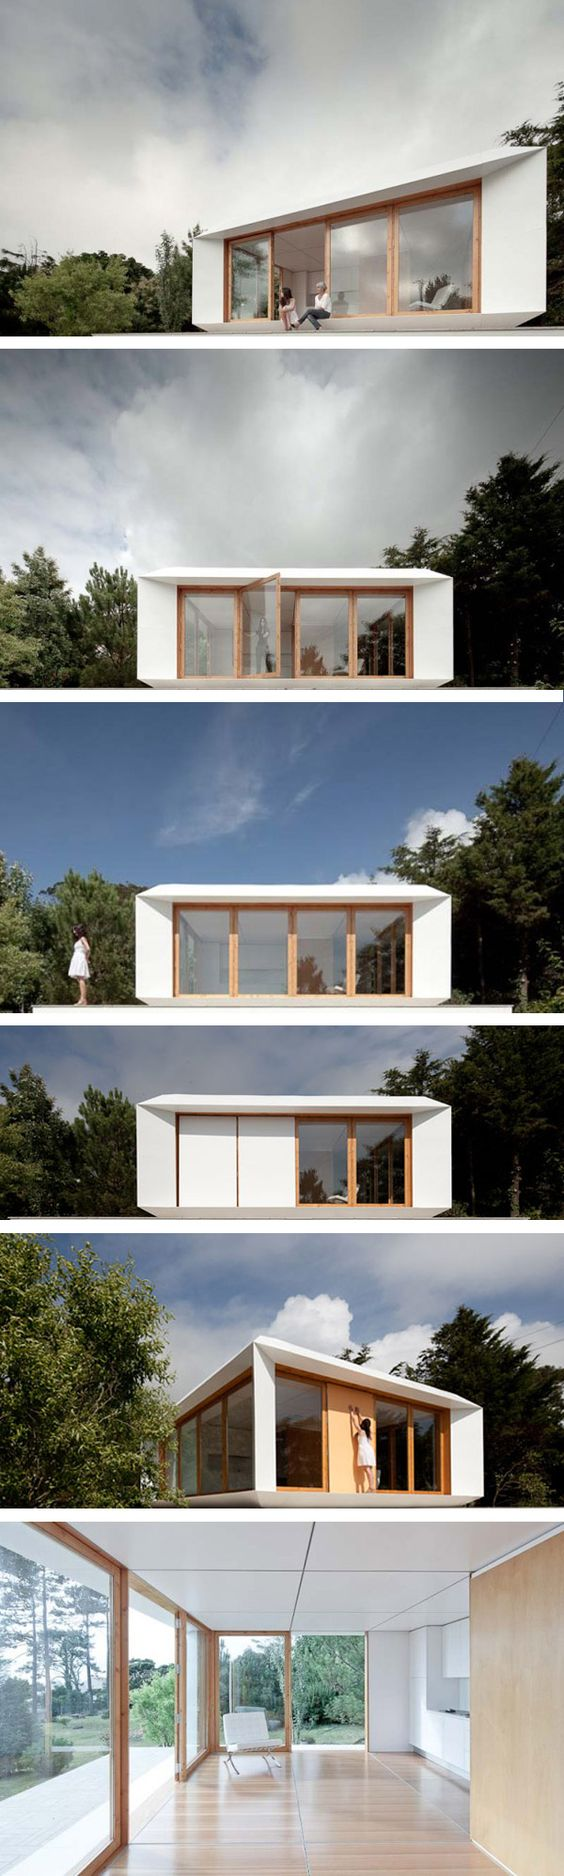 Prefab houses, portugal and architects on pinterest